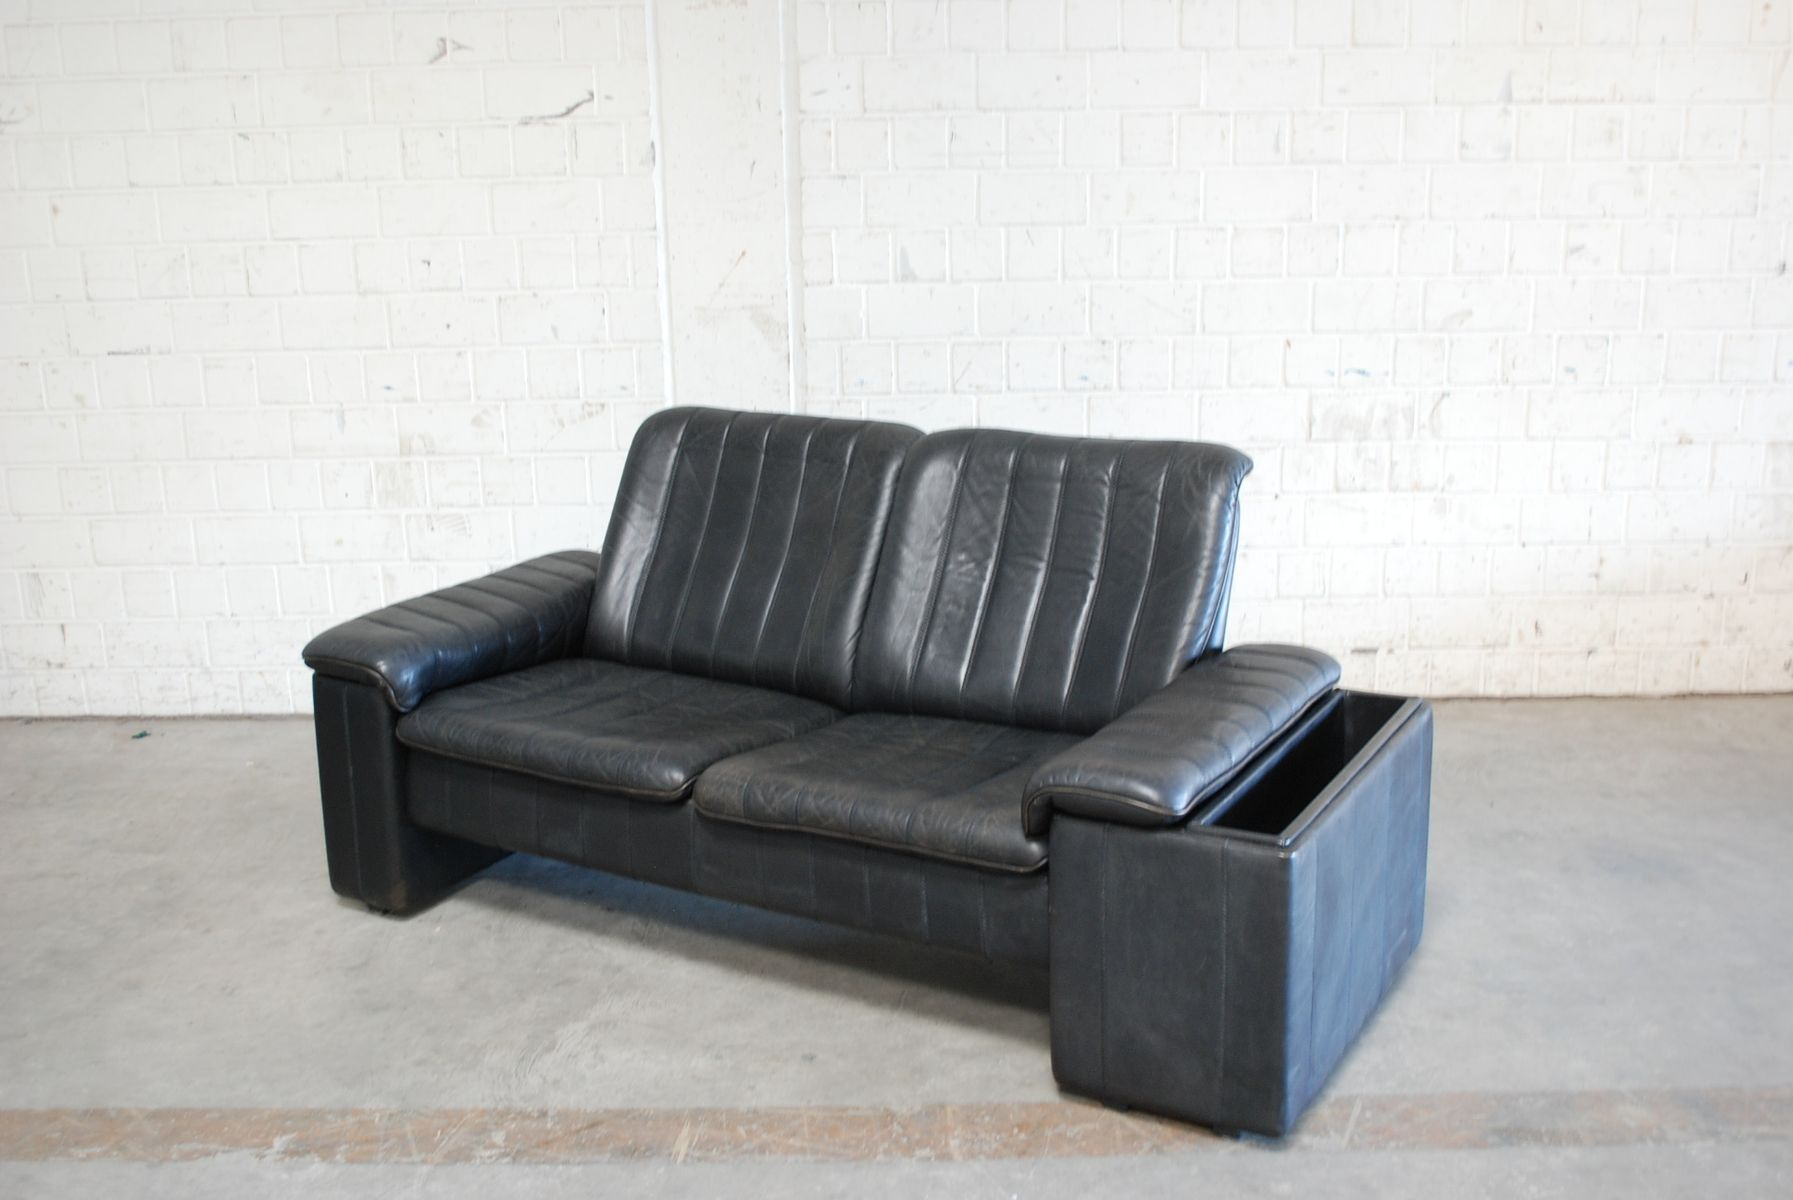 anthrazitfarbenes vintage zwei sitzer ledersofa von de sede bei pamono kaufen. Black Bedroom Furniture Sets. Home Design Ideas